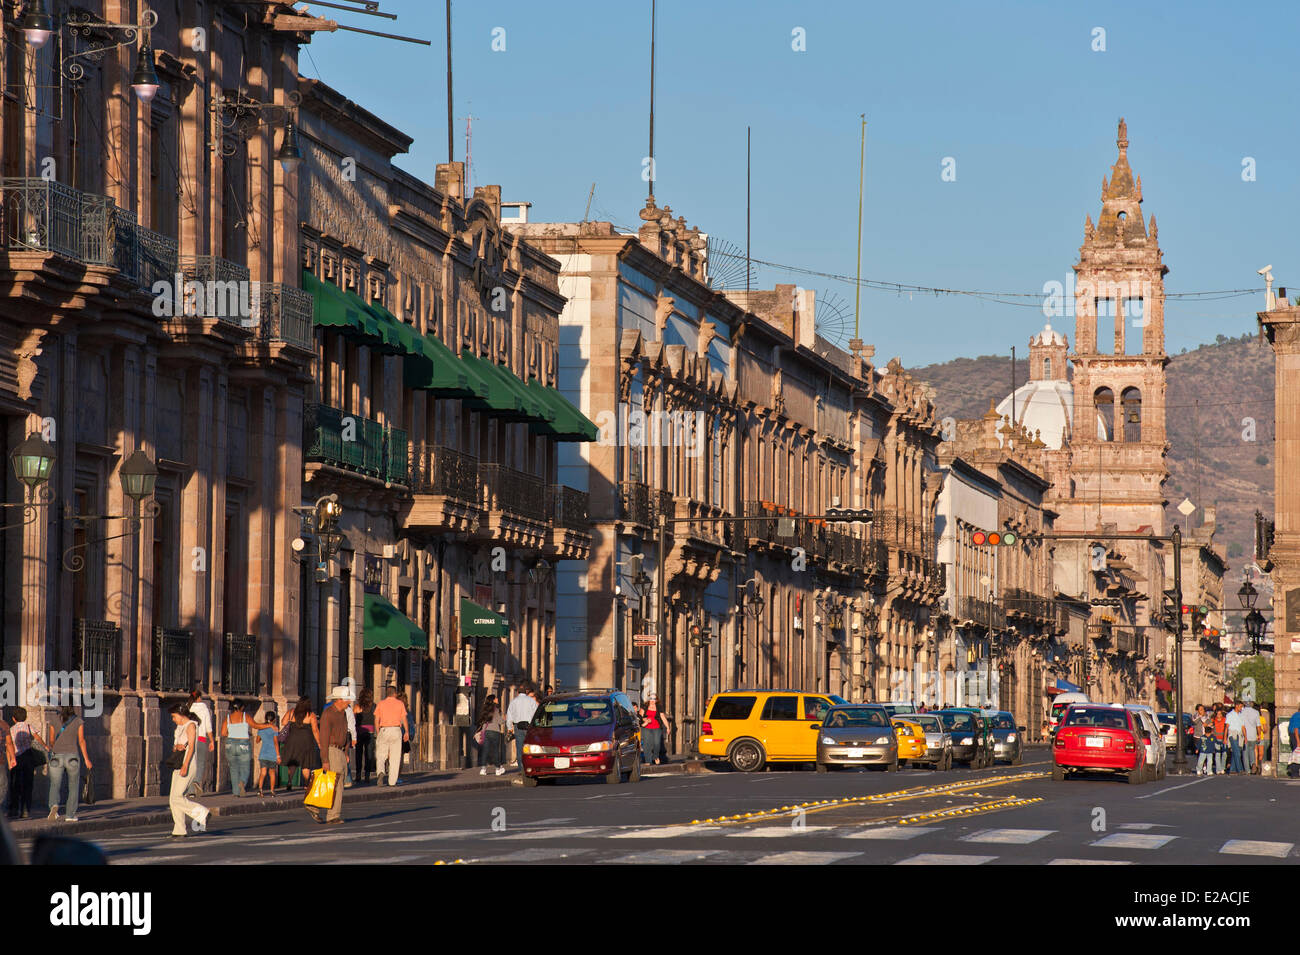 Mexico, Michoacan state, Morelia, listed as World Heritage by UNESCO, Modero avenue - Stock Image